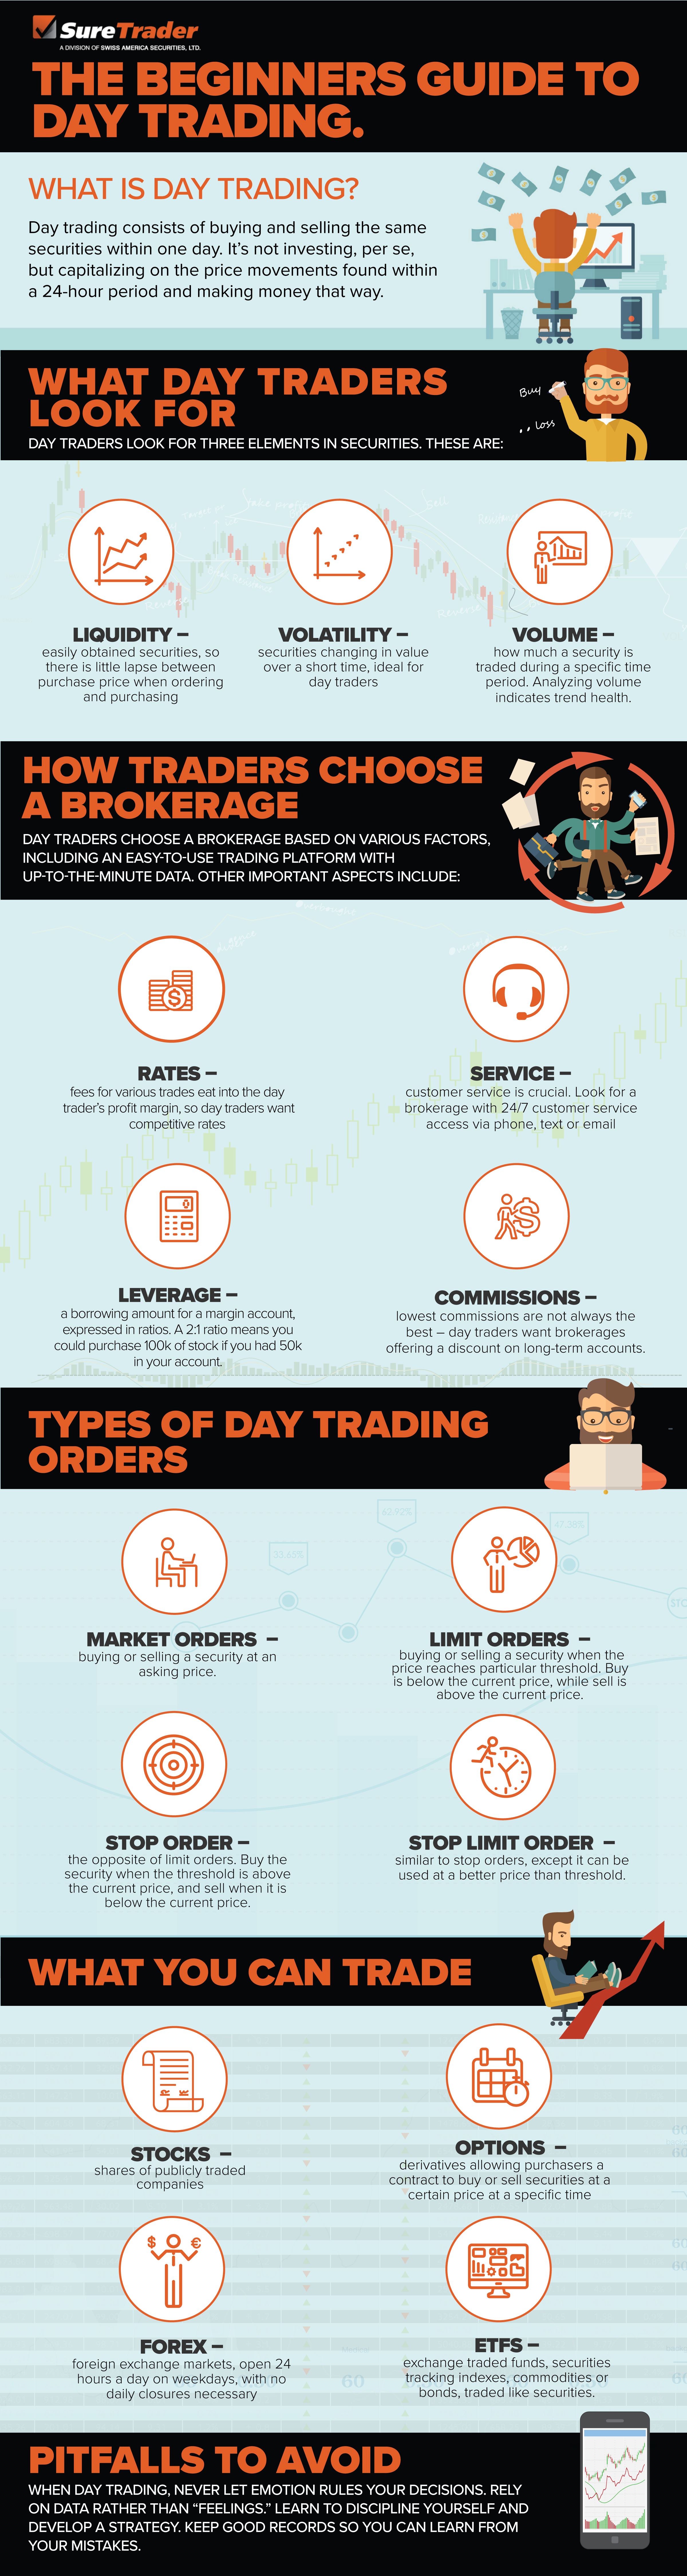 Day Trading: A Beginners Guide on How to Buy and Sell Shares Daily - Infographic